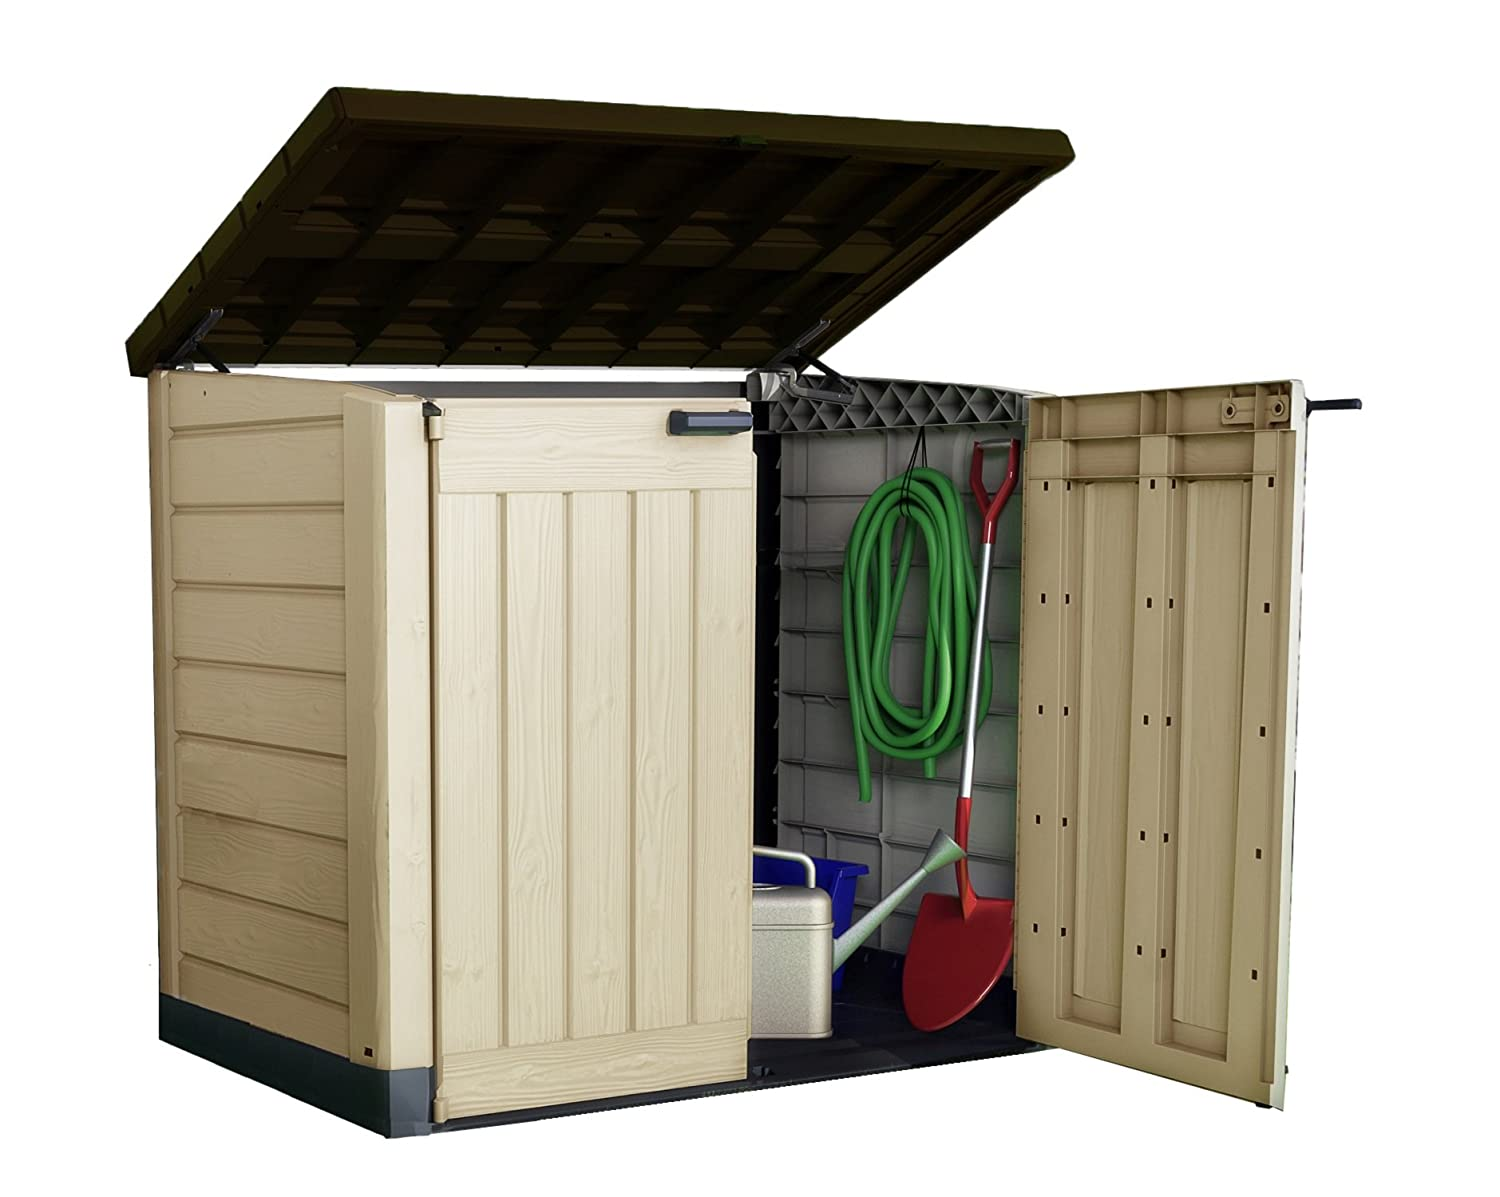 sheds outdoor spin p x building hei qlt wid storage shed prod resin rubbermaid